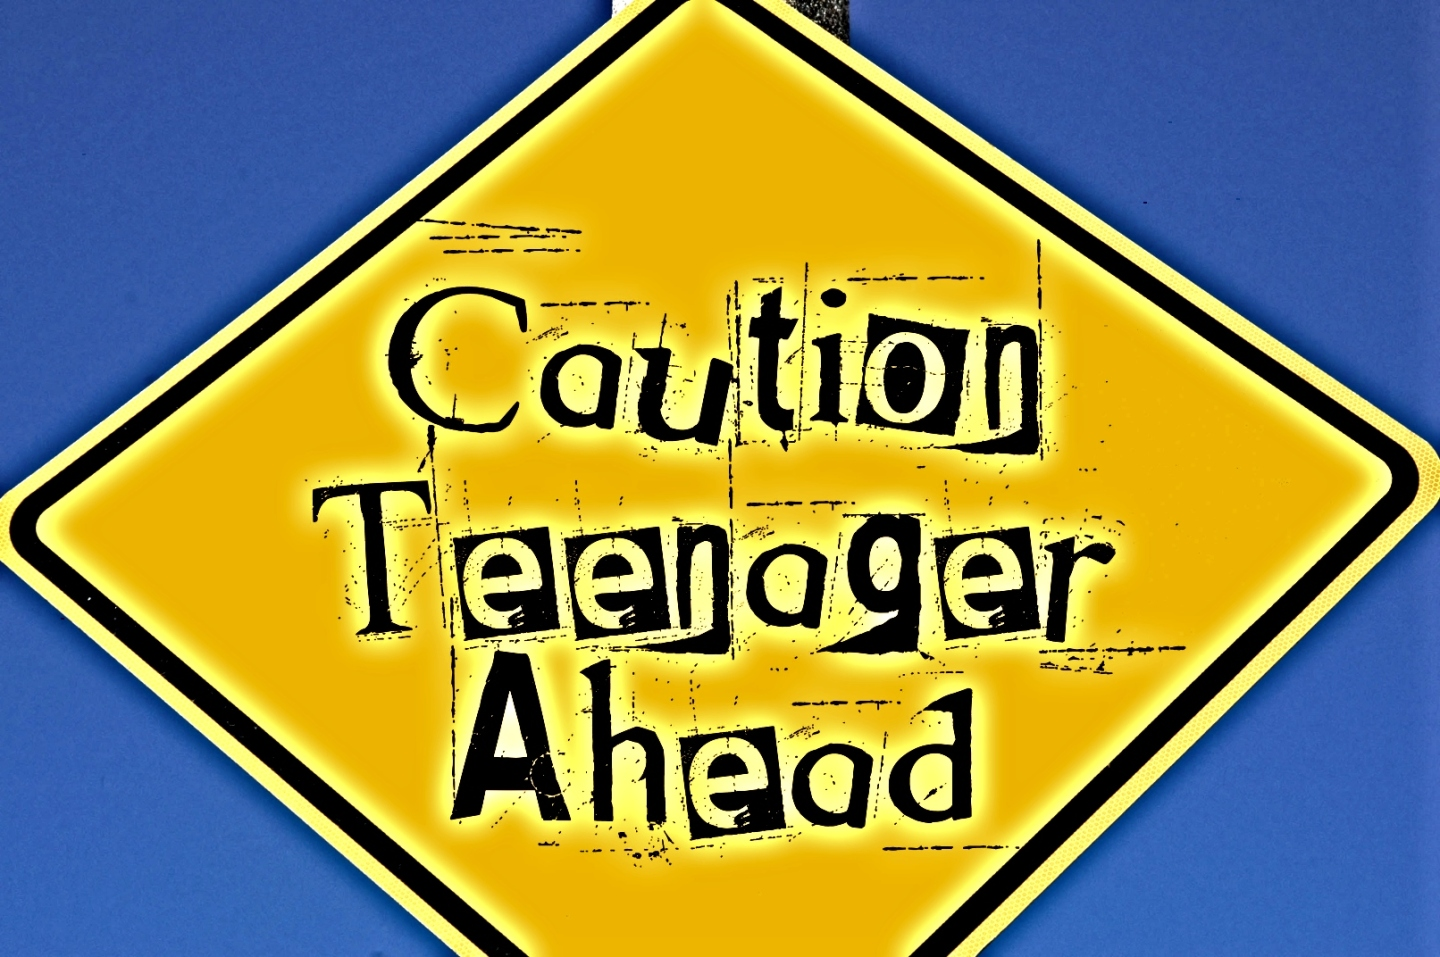 Caution Teenager Ahead signpost